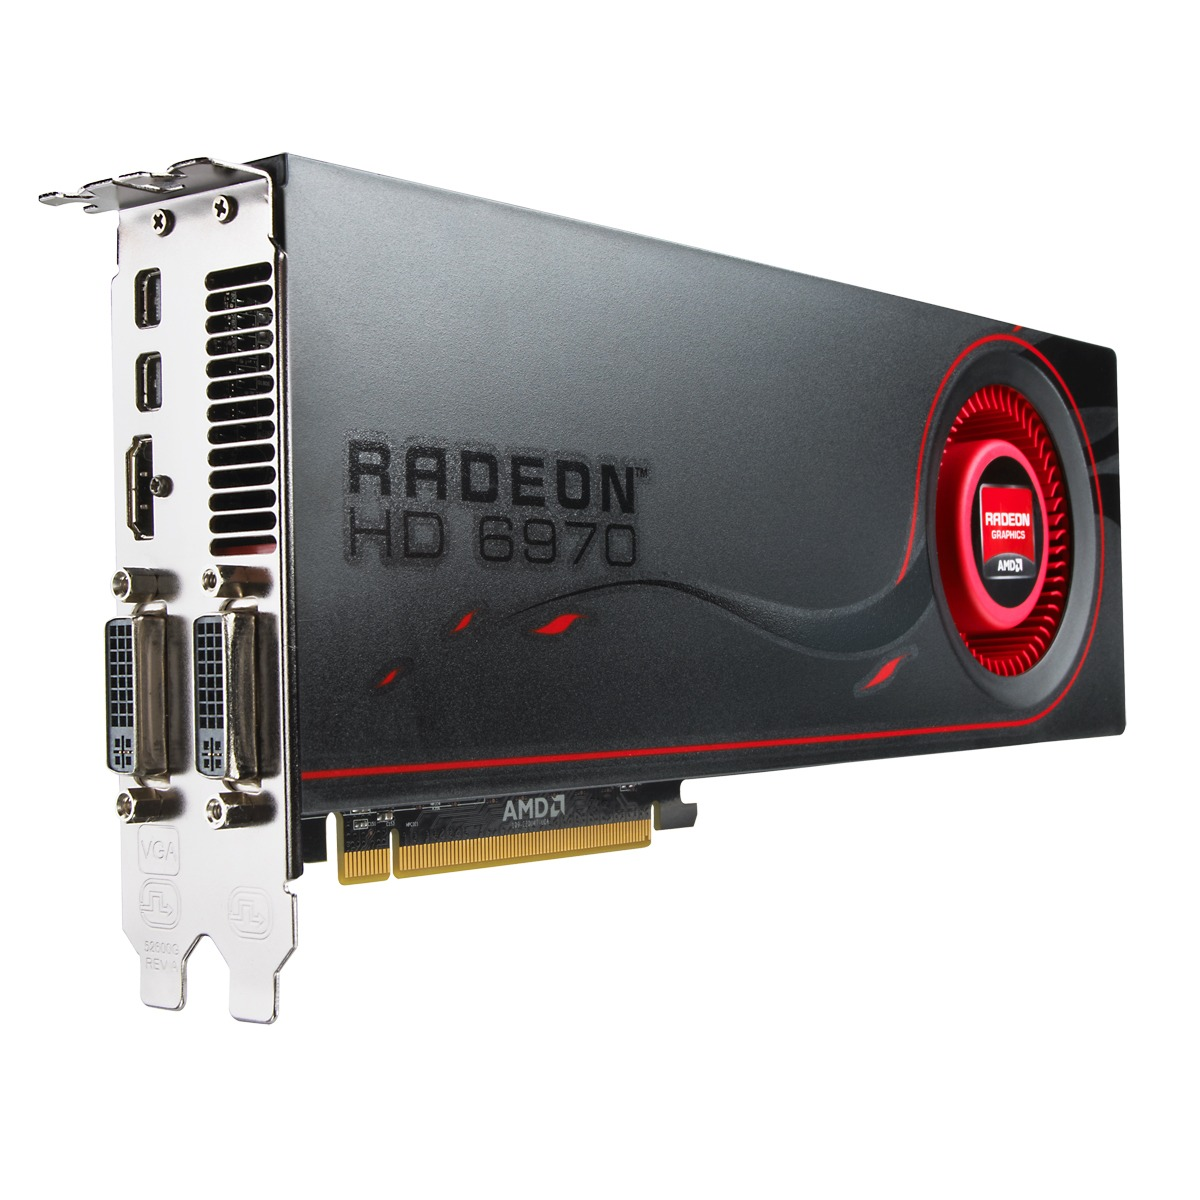 Carte graphique AMD Radeon HD 6970 2 GB AMD Radeon HD 6970 - 2 Go HDMI/Dual DVI/Dual Mini-DisplayPort - PCI Express (AMD Radeon HD 6970)